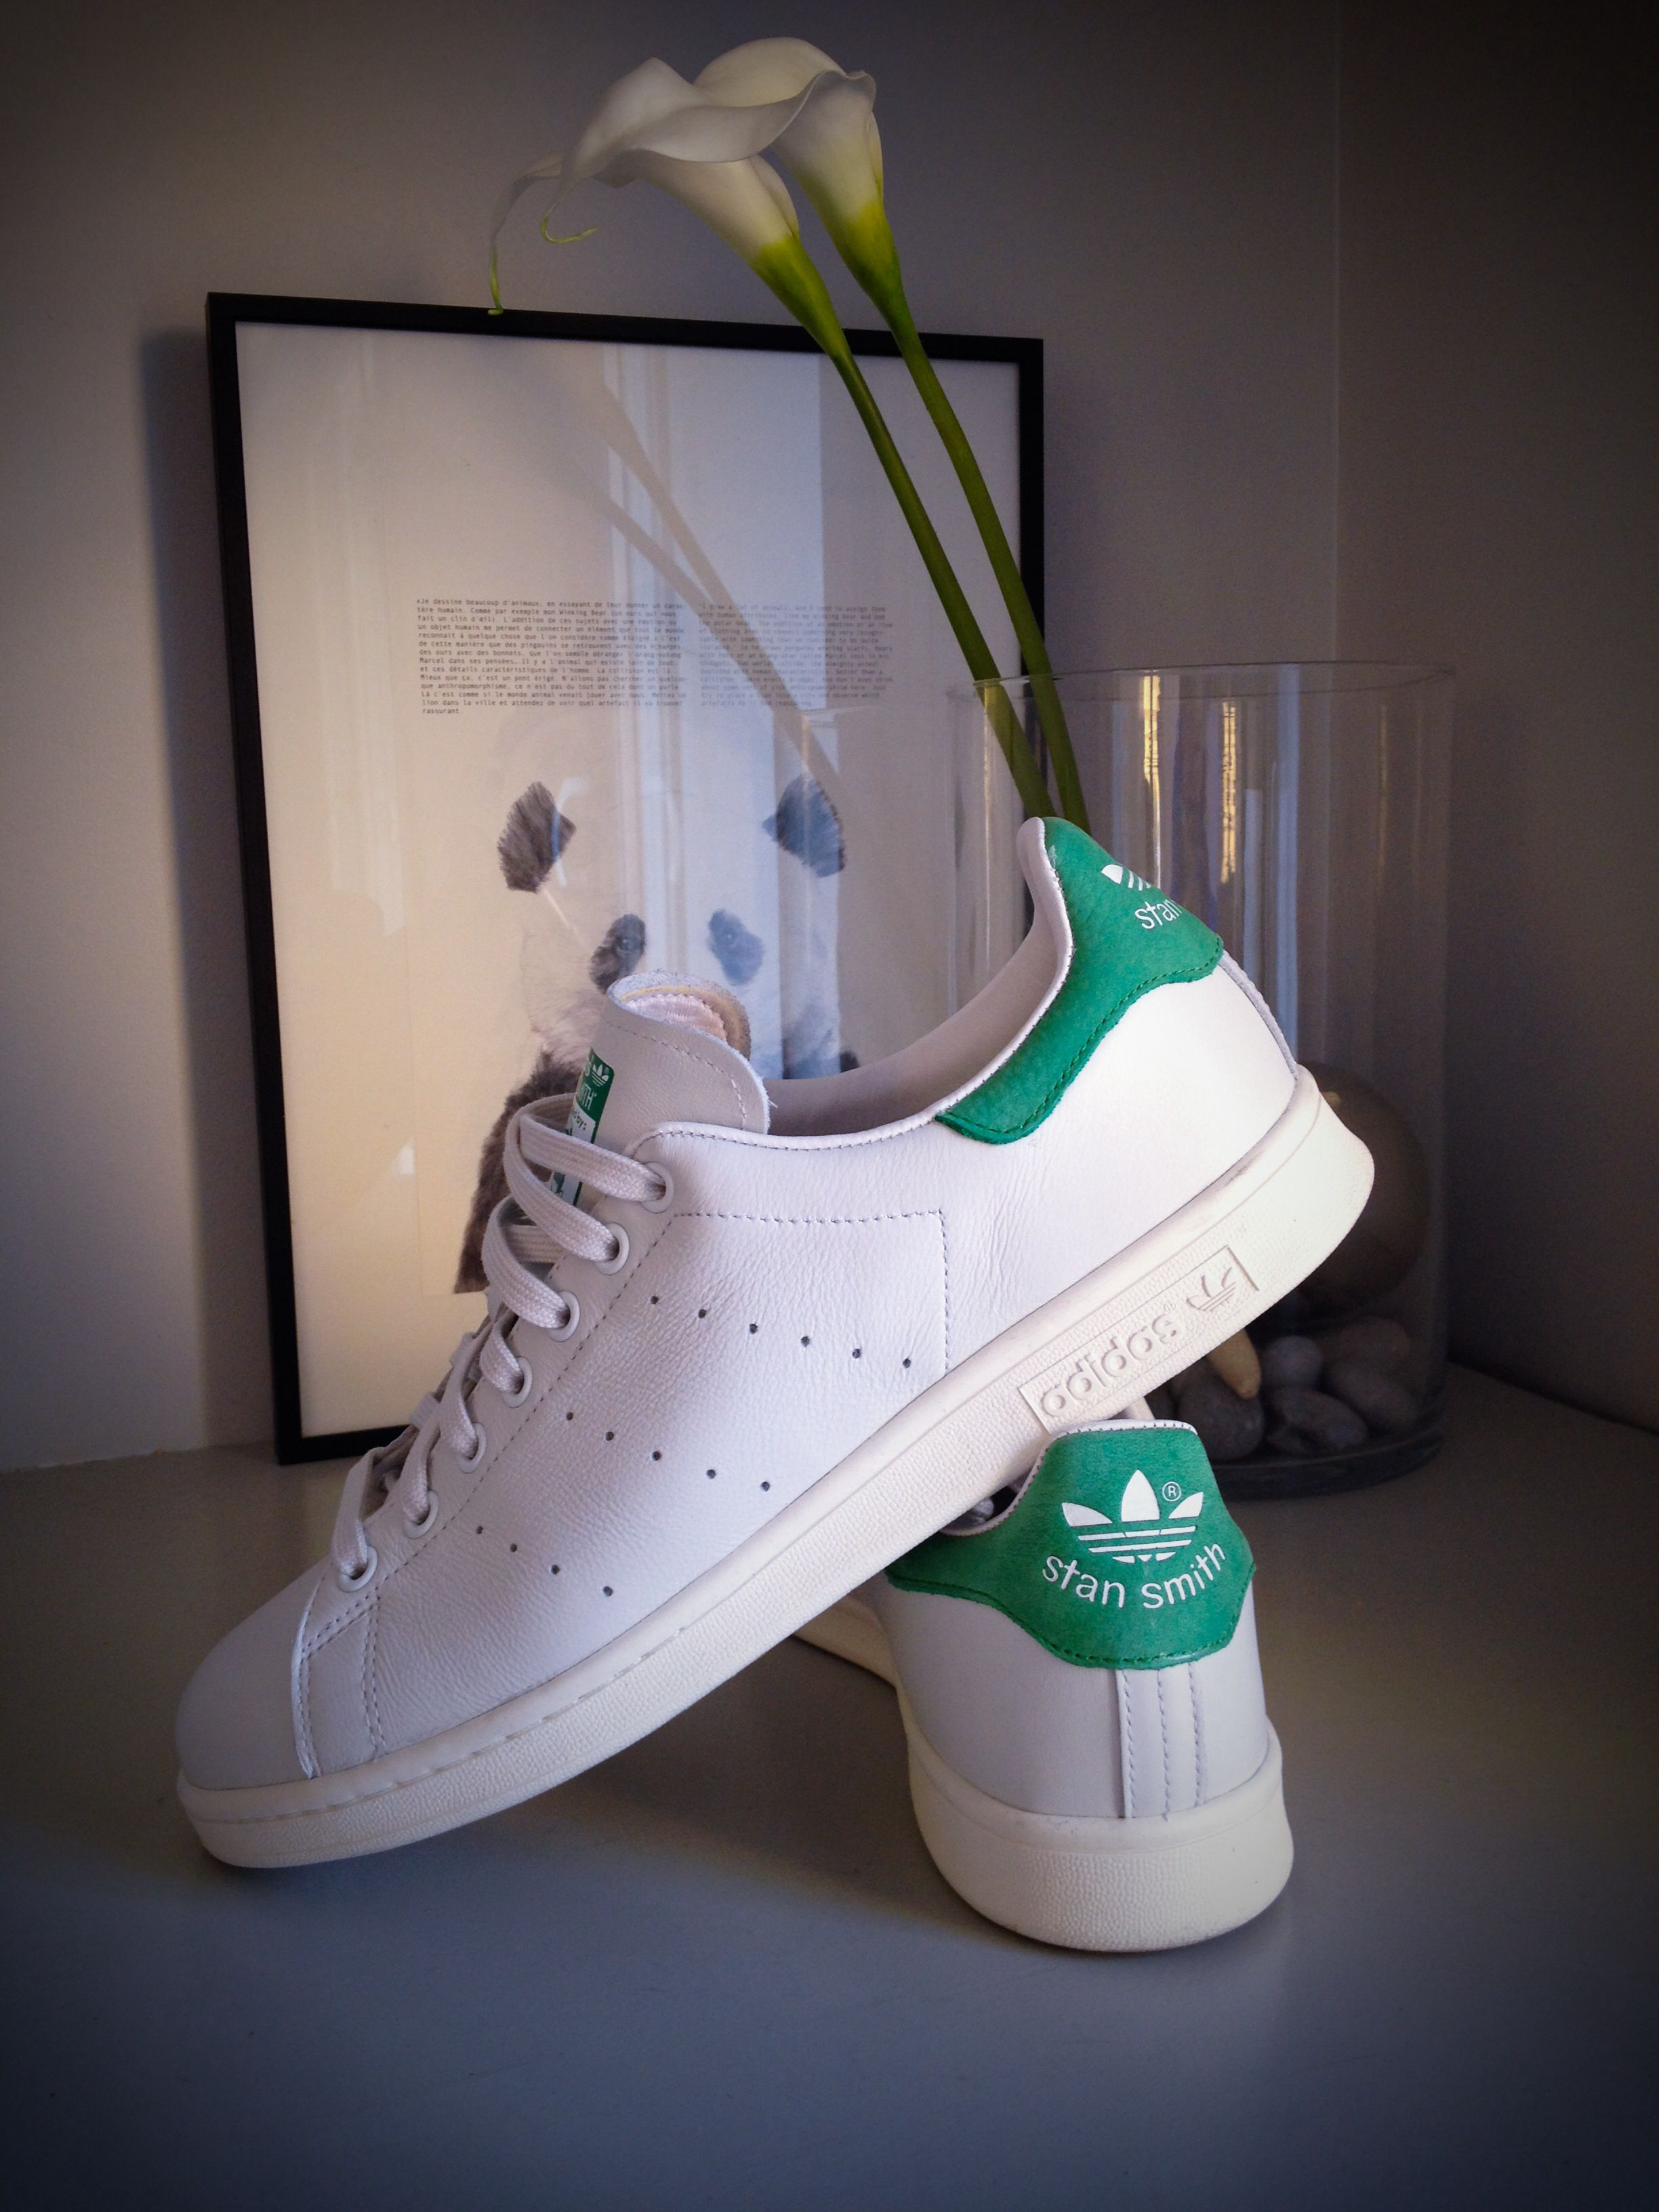 sale retailer 8c4ce 263e2 Stan Smith Adidas sneakers they are back in Indian market ...